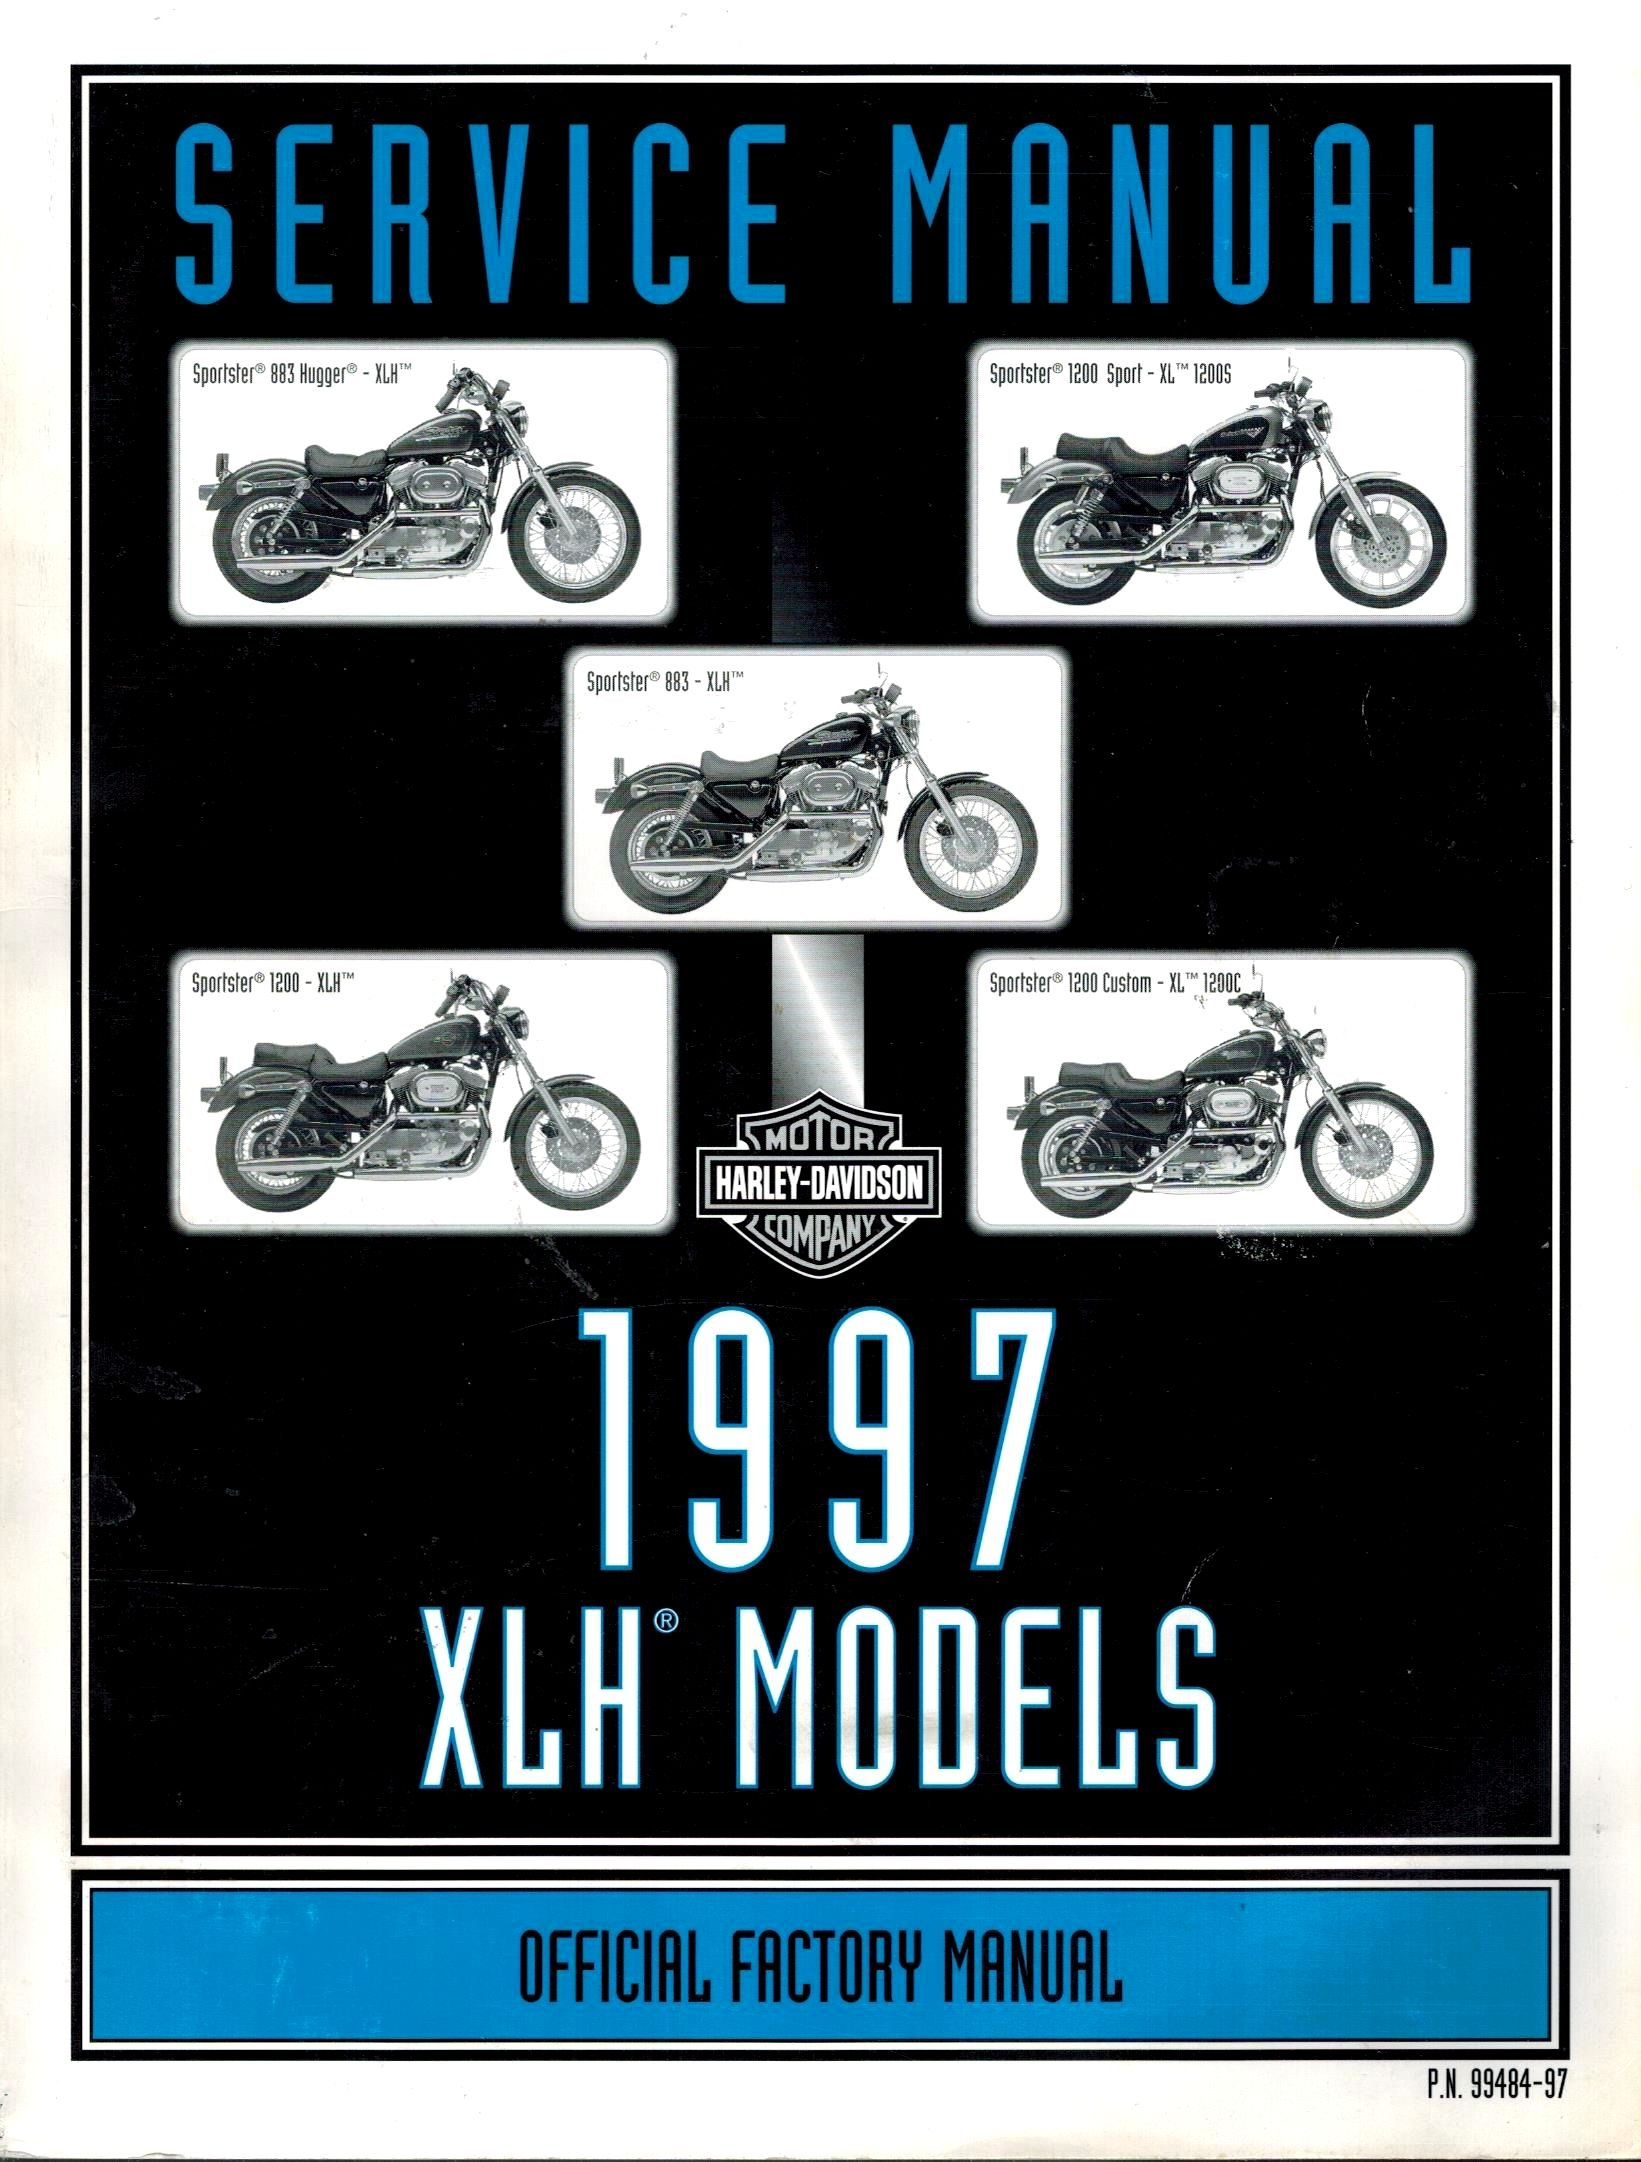 1997 Harley-Davidson XLH Models Official Factory Service Manual (P.N.  99484-97): Harley Davidson: Amazon.com: Books